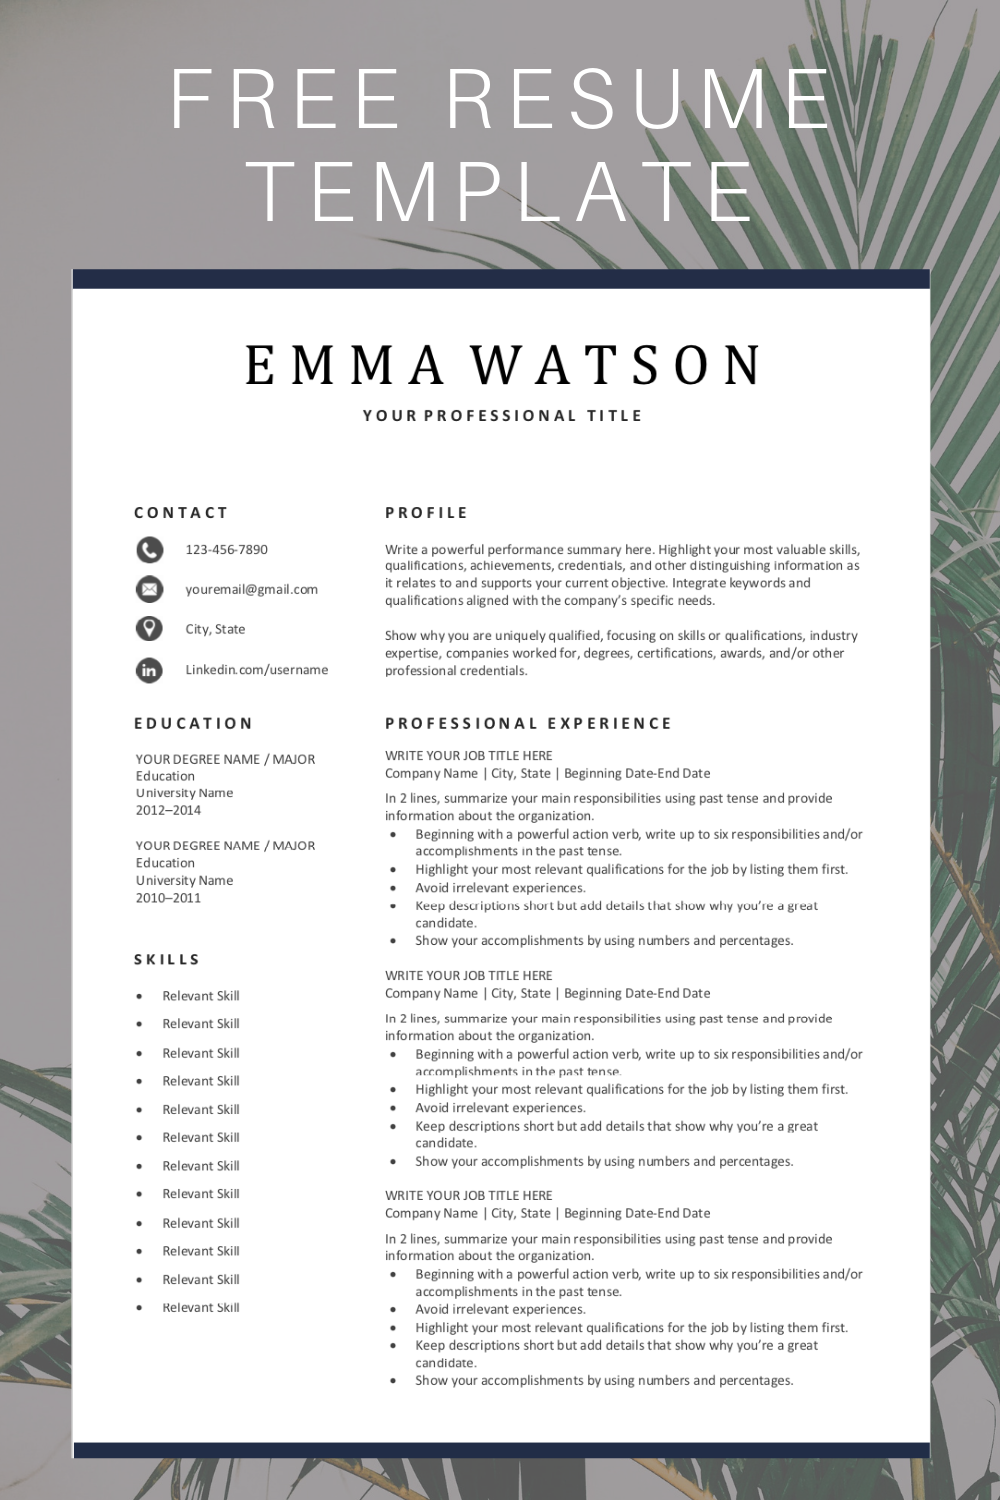 Simple Resume Template Free Download Resume template